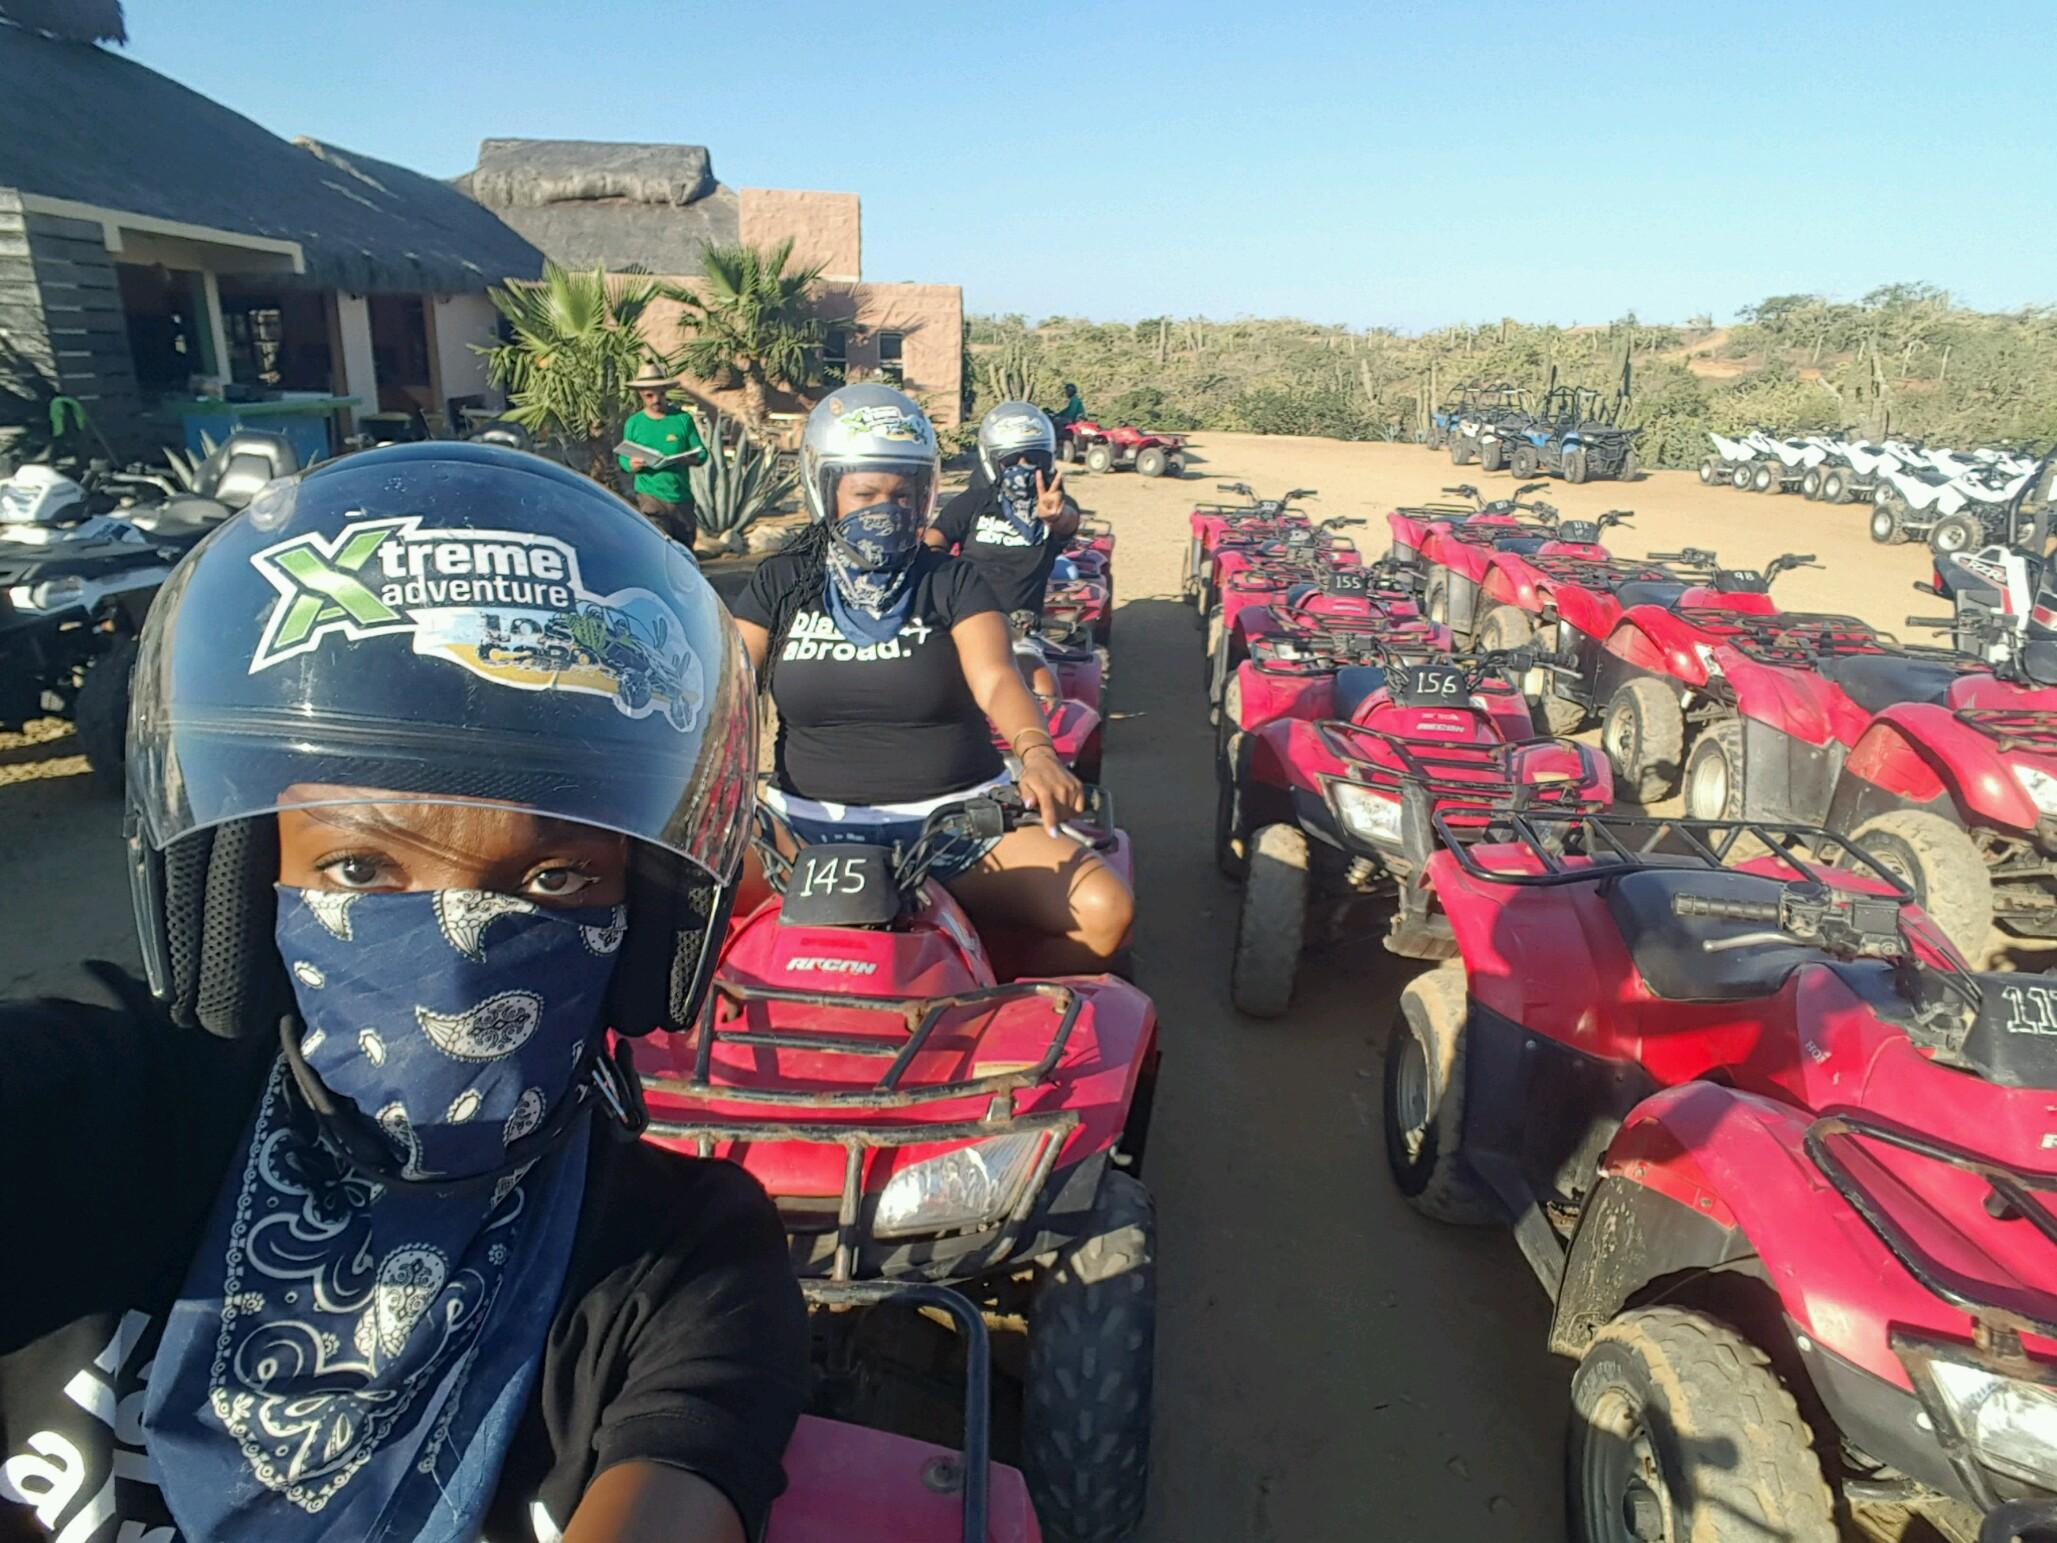 Ready to Ride!!! I was literally covered in Dirt after we finished riding on the ATVs.